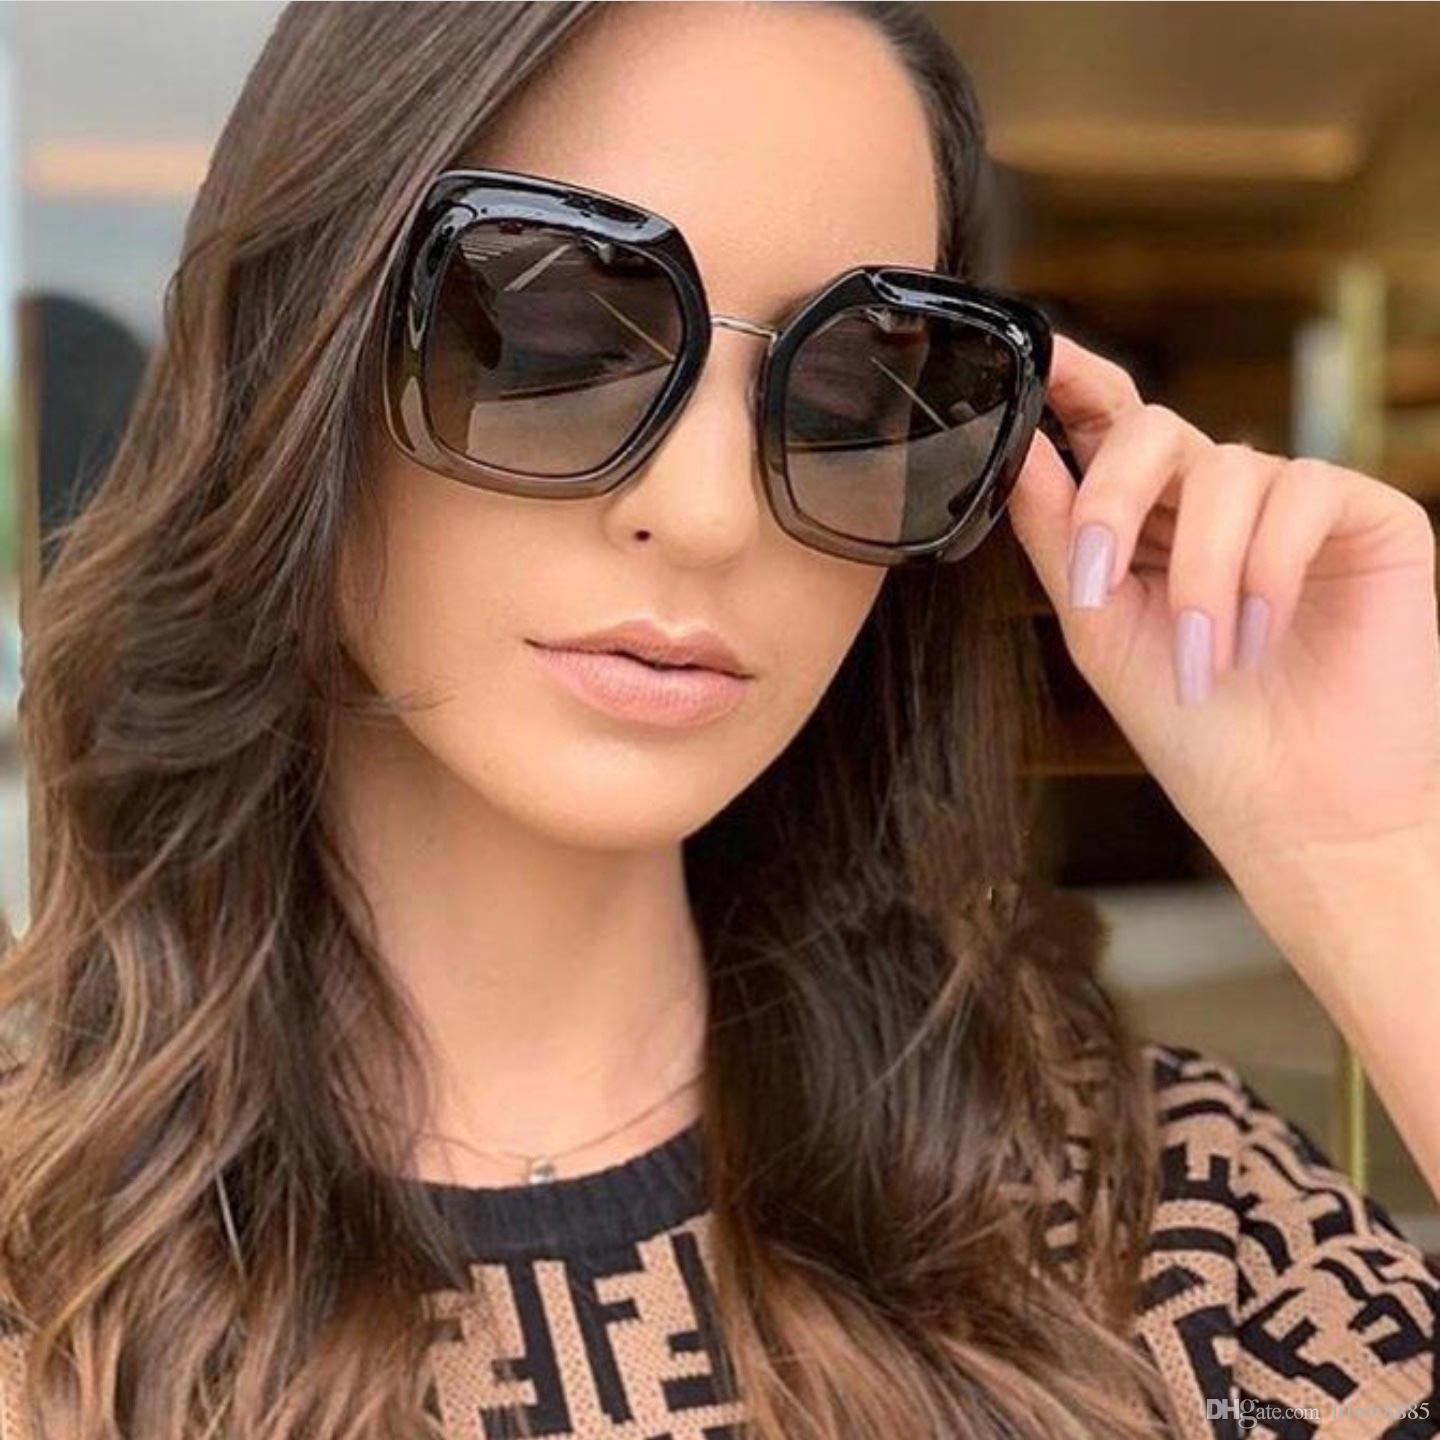 8dafb8e7acf Women Sunglasses 2018 Big Frame Sun Glass Retro Square Sunglasses Women  Fashion Shades UV400 Vintage Glasses Glasses Frames Glasses Online From  Ltlwb8885